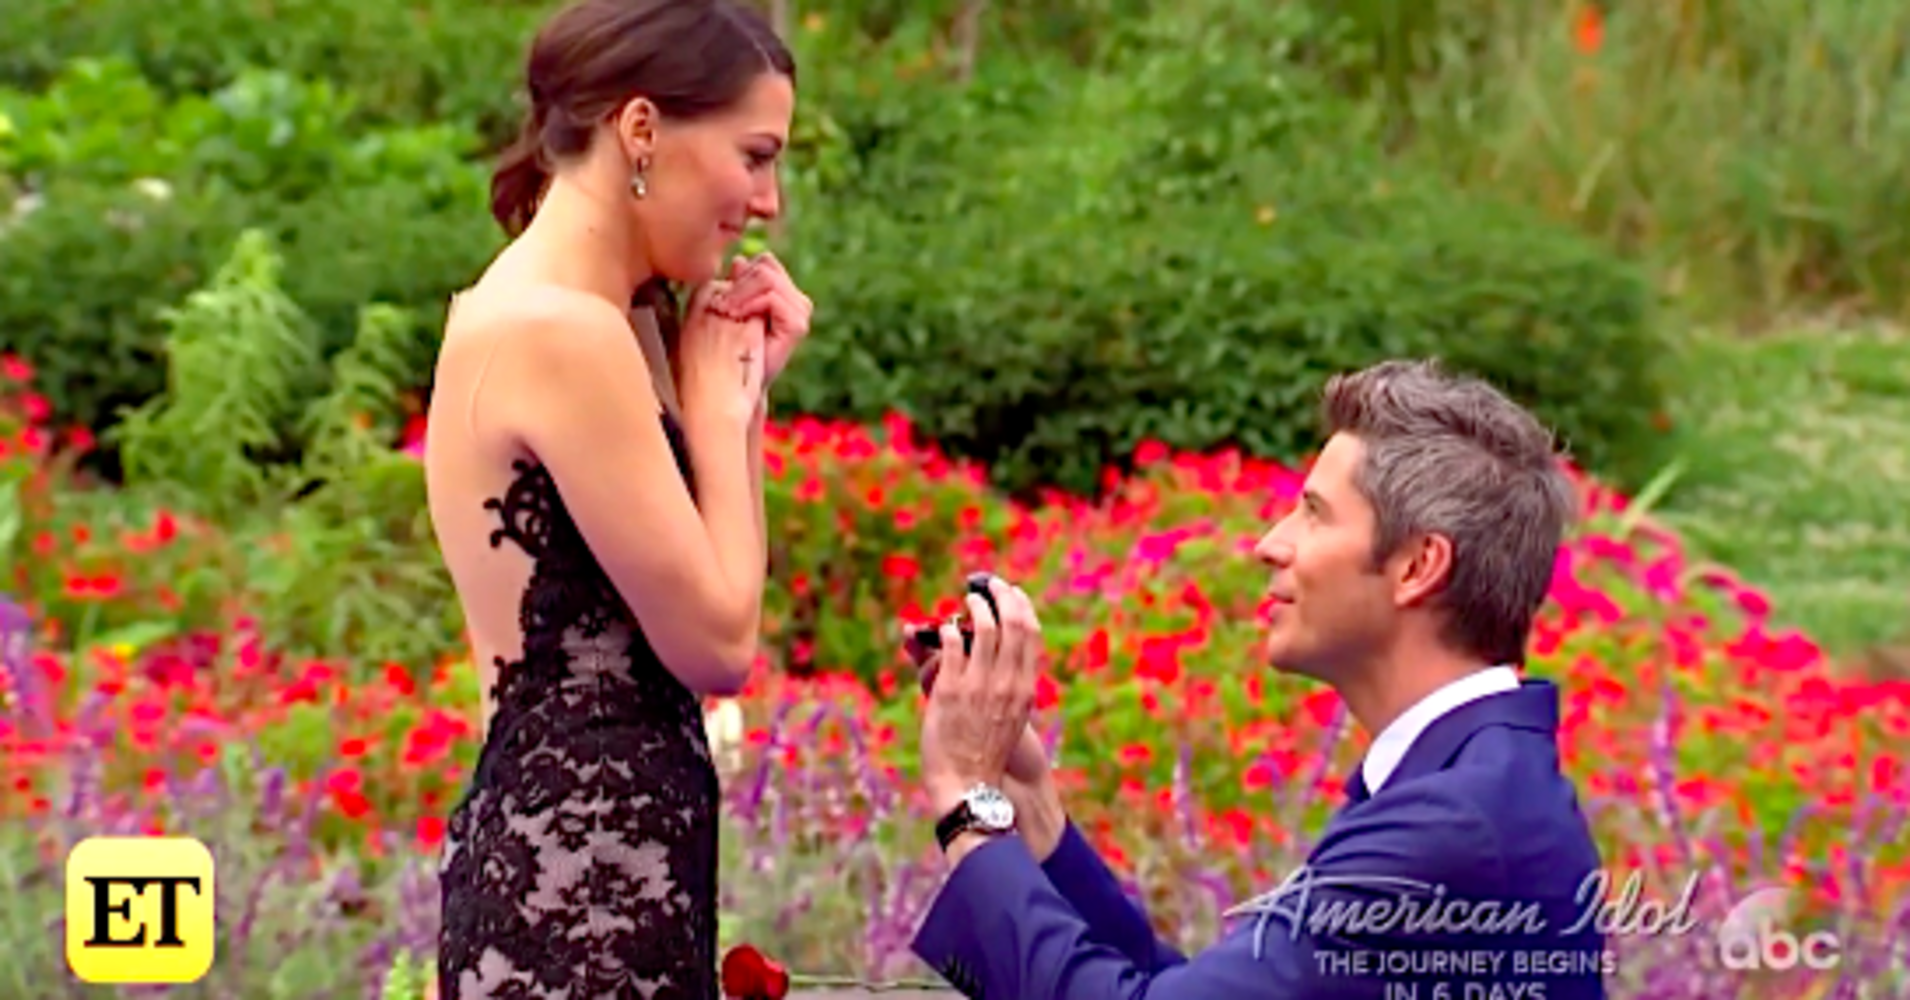 Twitter Goes Bonkers Over WTF 'Bachelor' Finale